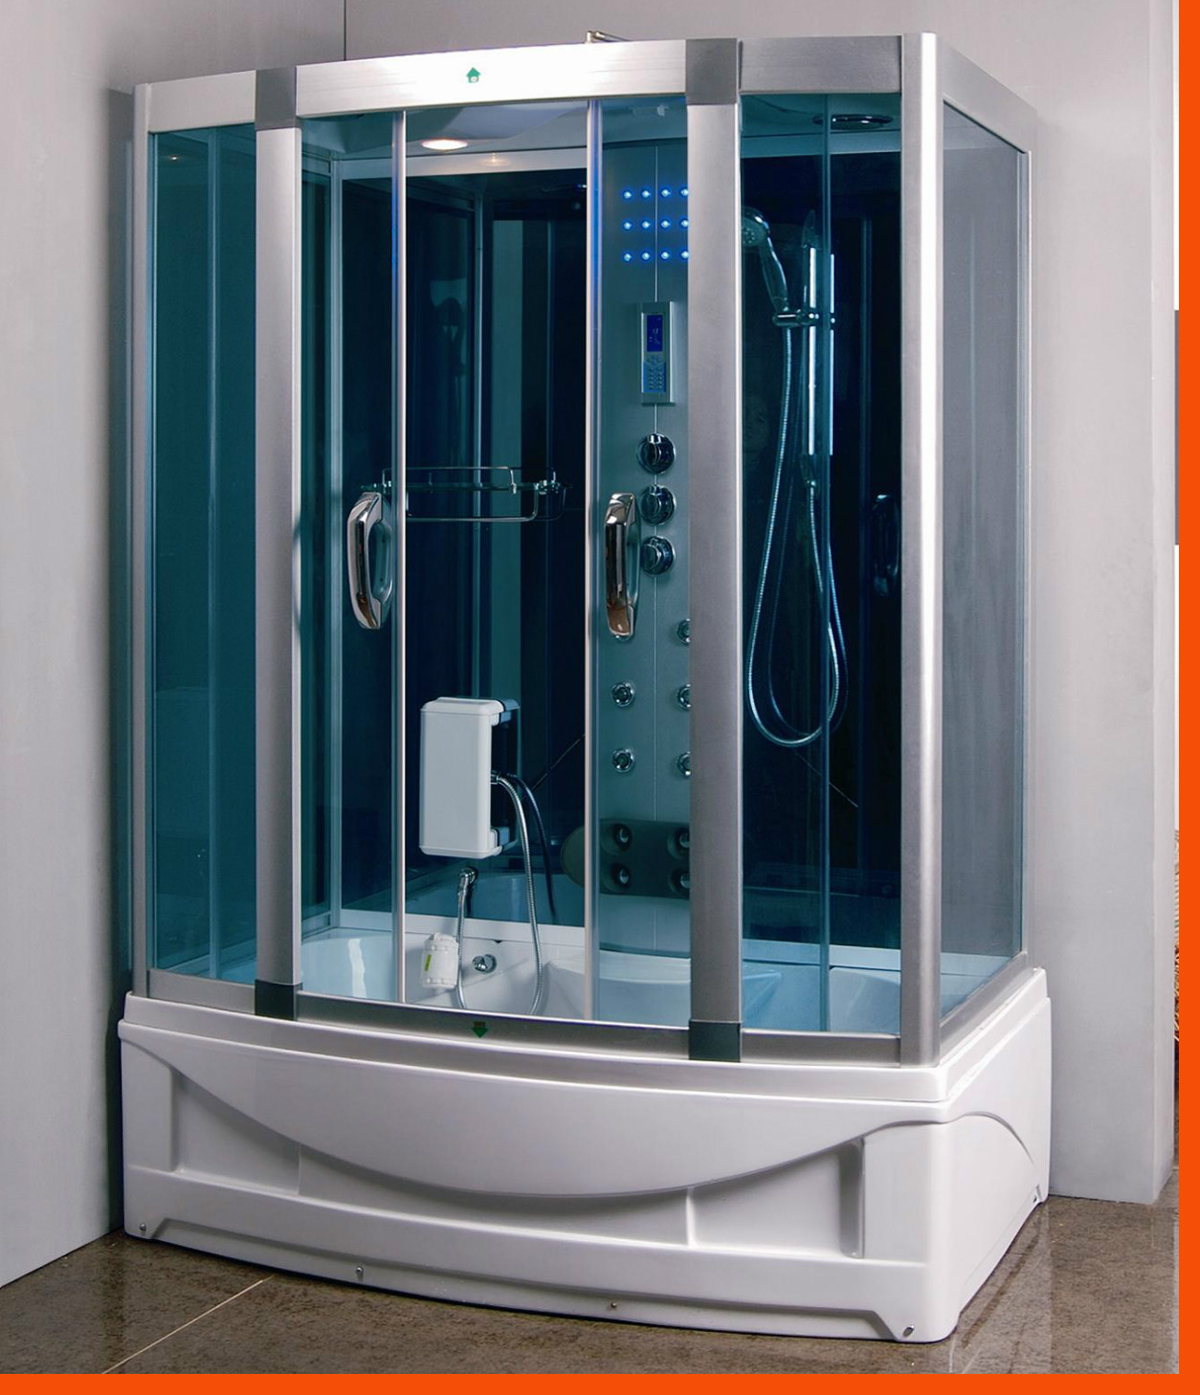 Steam Shower Room With deep Whirlpool Tub.BLUETOOTH. 9001 HEAVY DUTY ...